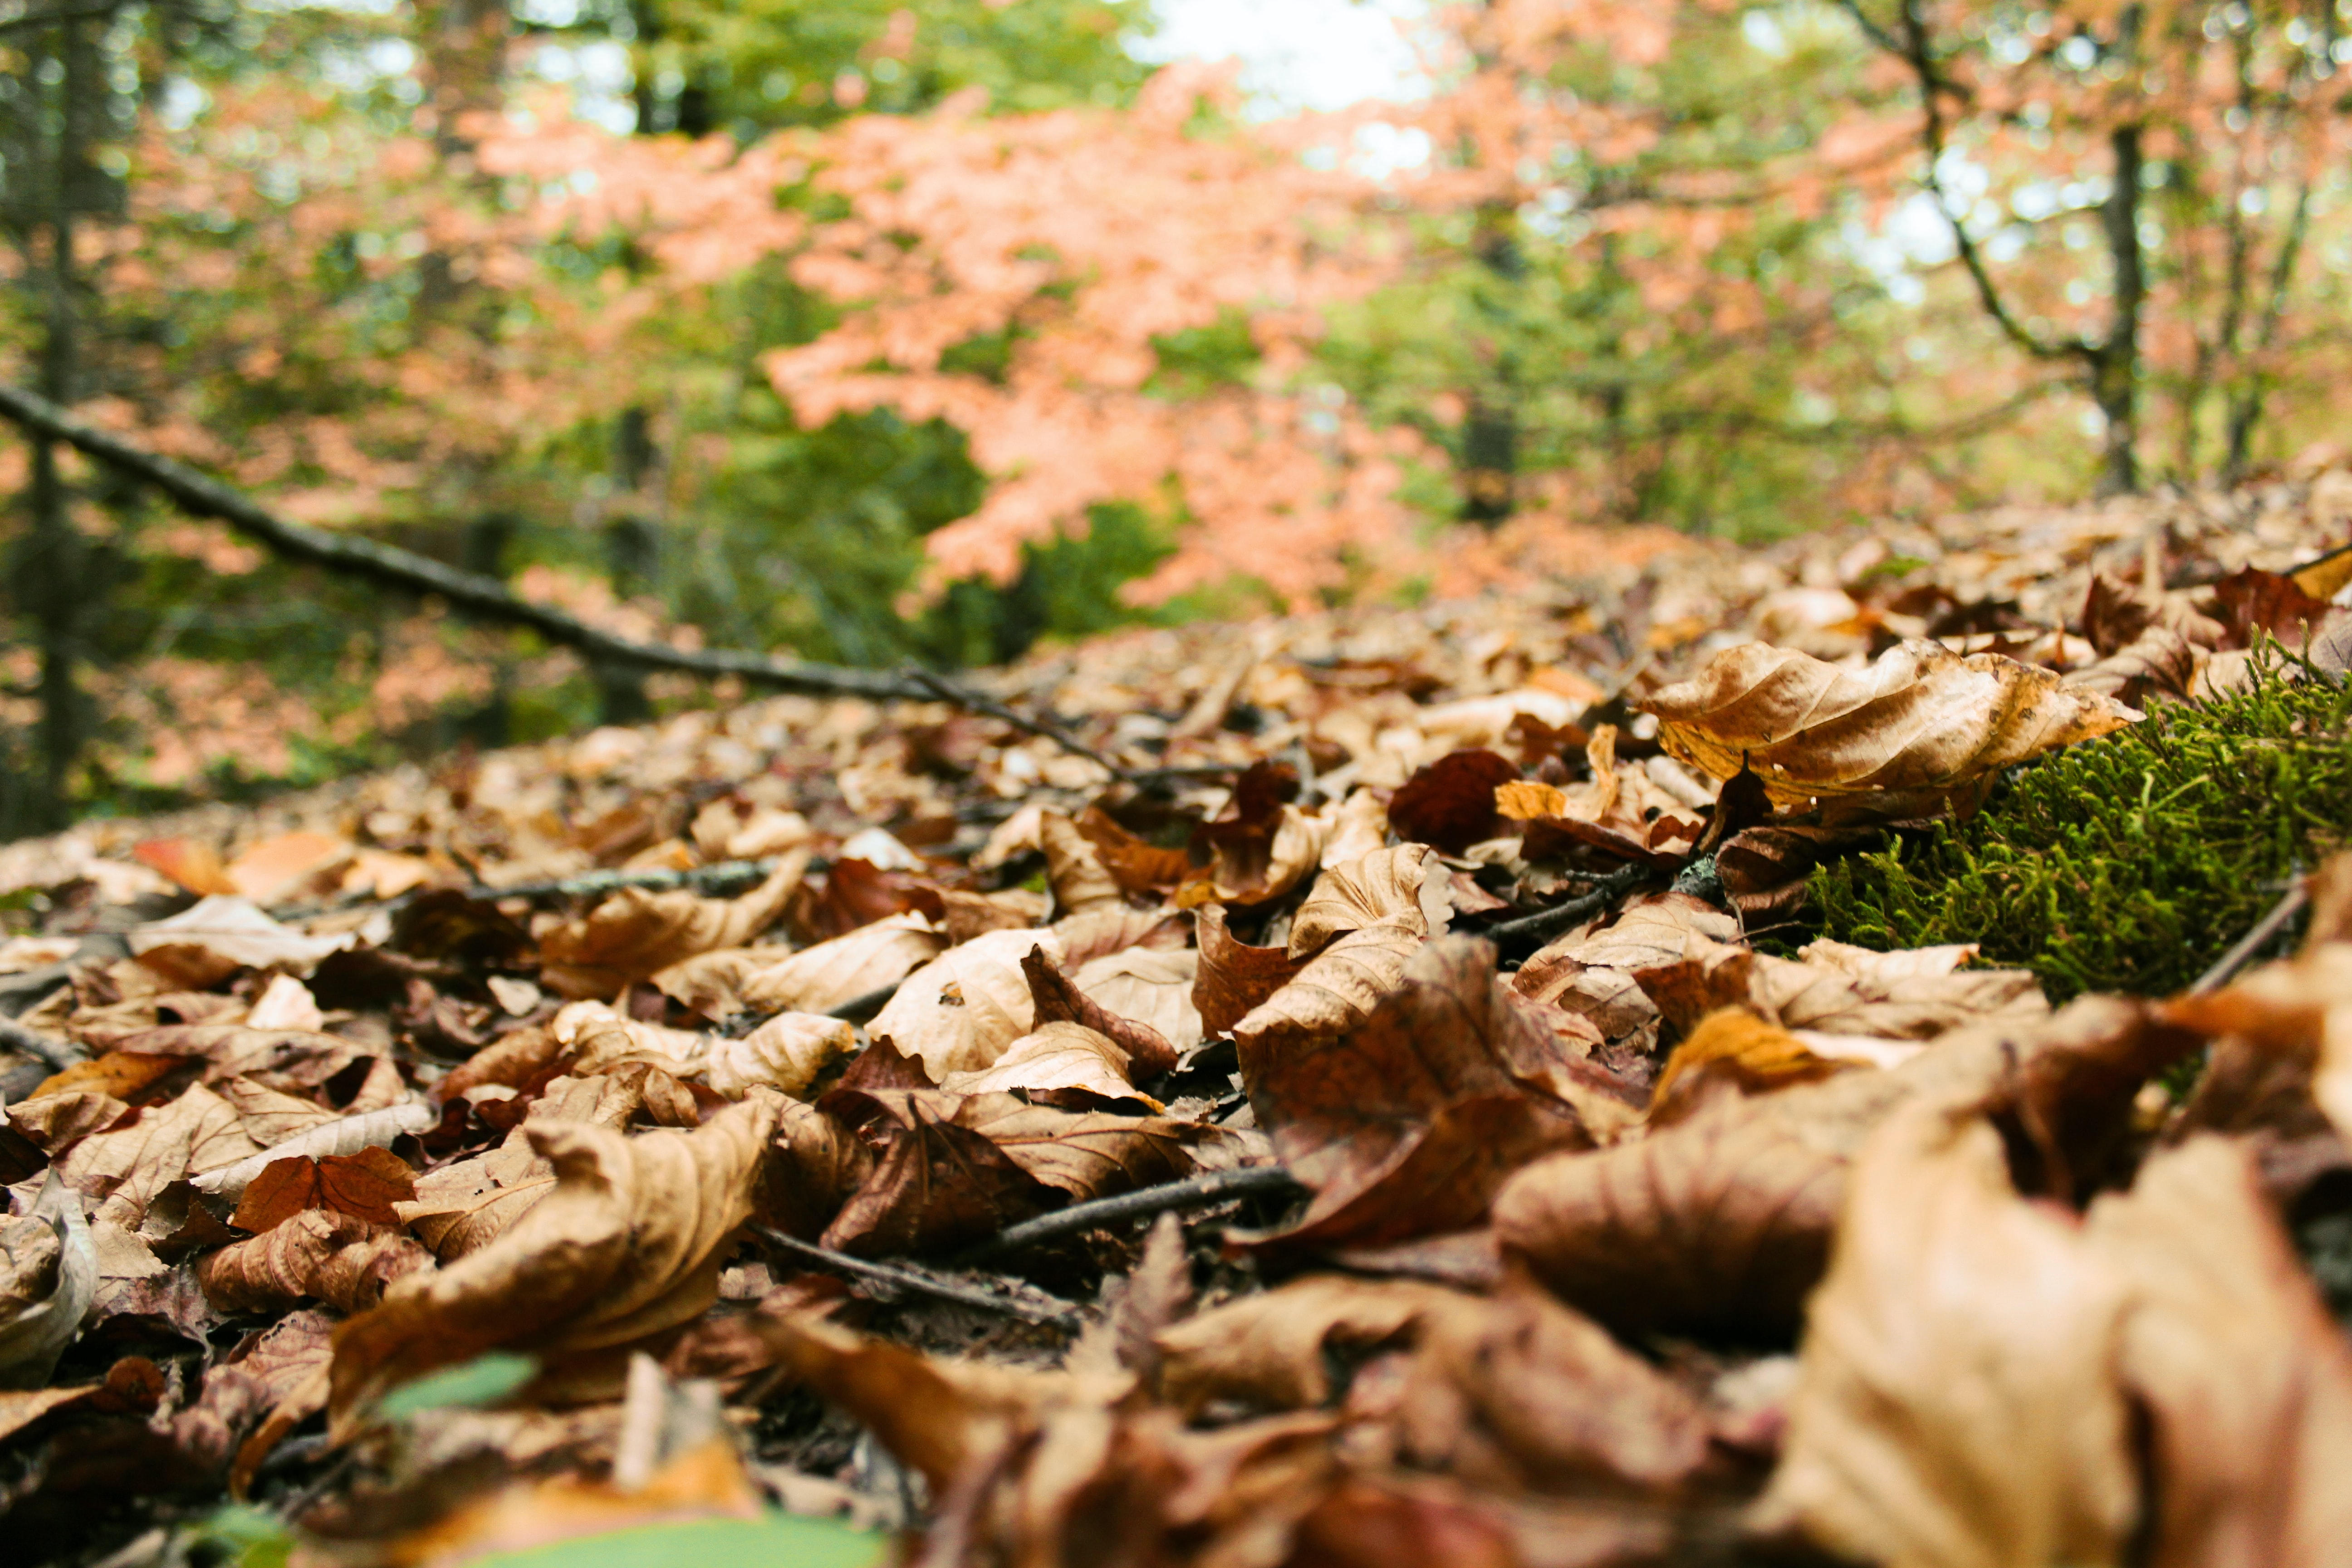 focused photo of withered leaves